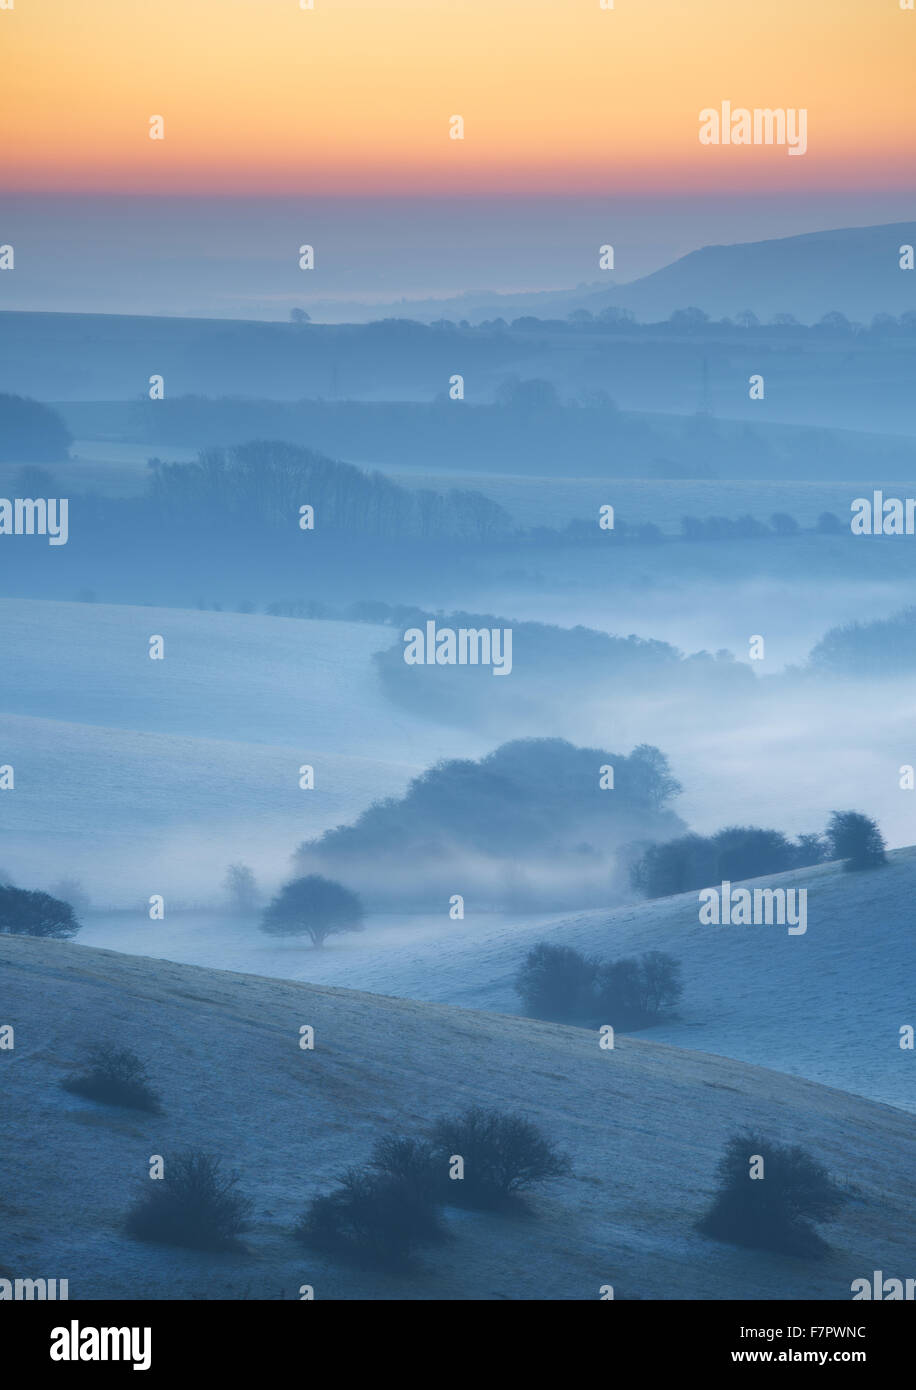 A misty view across the Sussex Downs at dawn, from Ditchling Beacon, East Sussex. - Stock Image